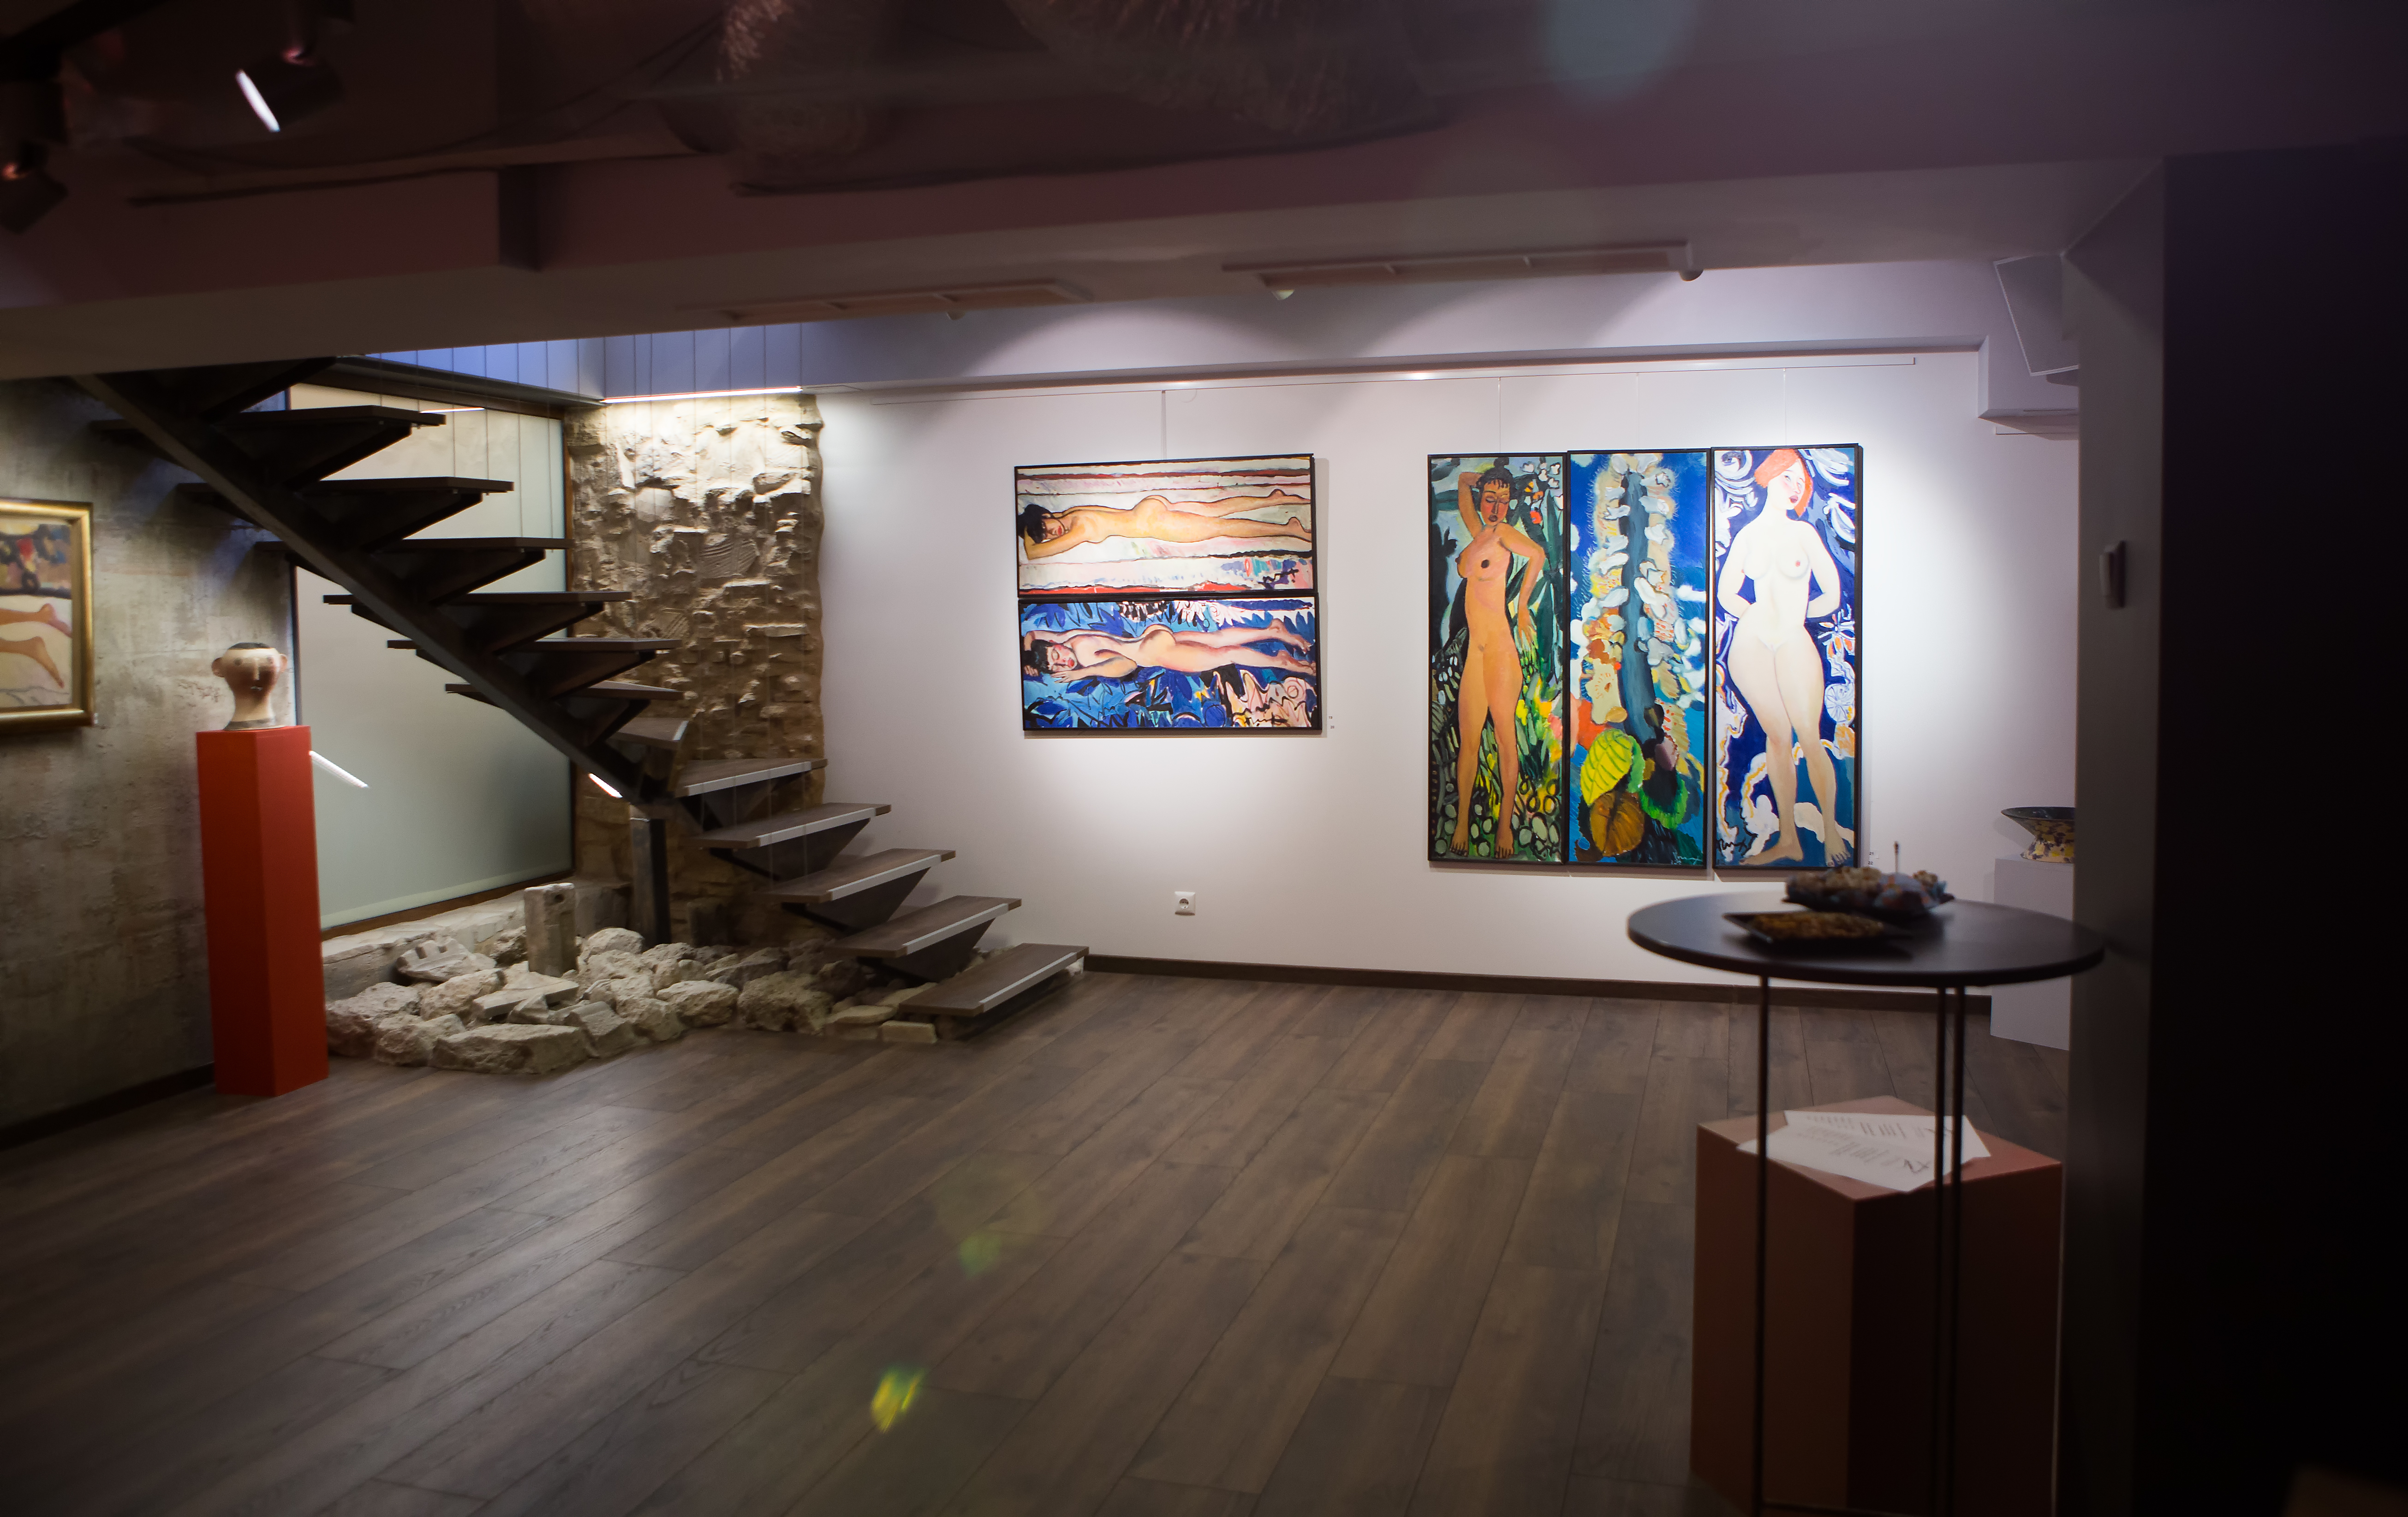 Tereza Zikovska Art Gallery is an artistic space mixing modern design with elements of the ancient wall of Odessos, the old town of Varna